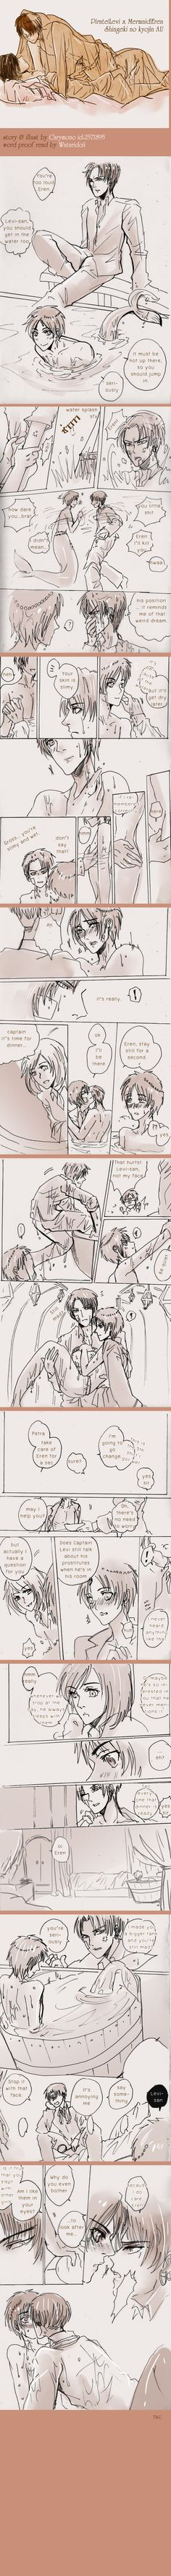 SnK'AU : Pirate!Levi x Mermaid!Eren part11 by illuscarymono.deviantart.com on @DeviantArt